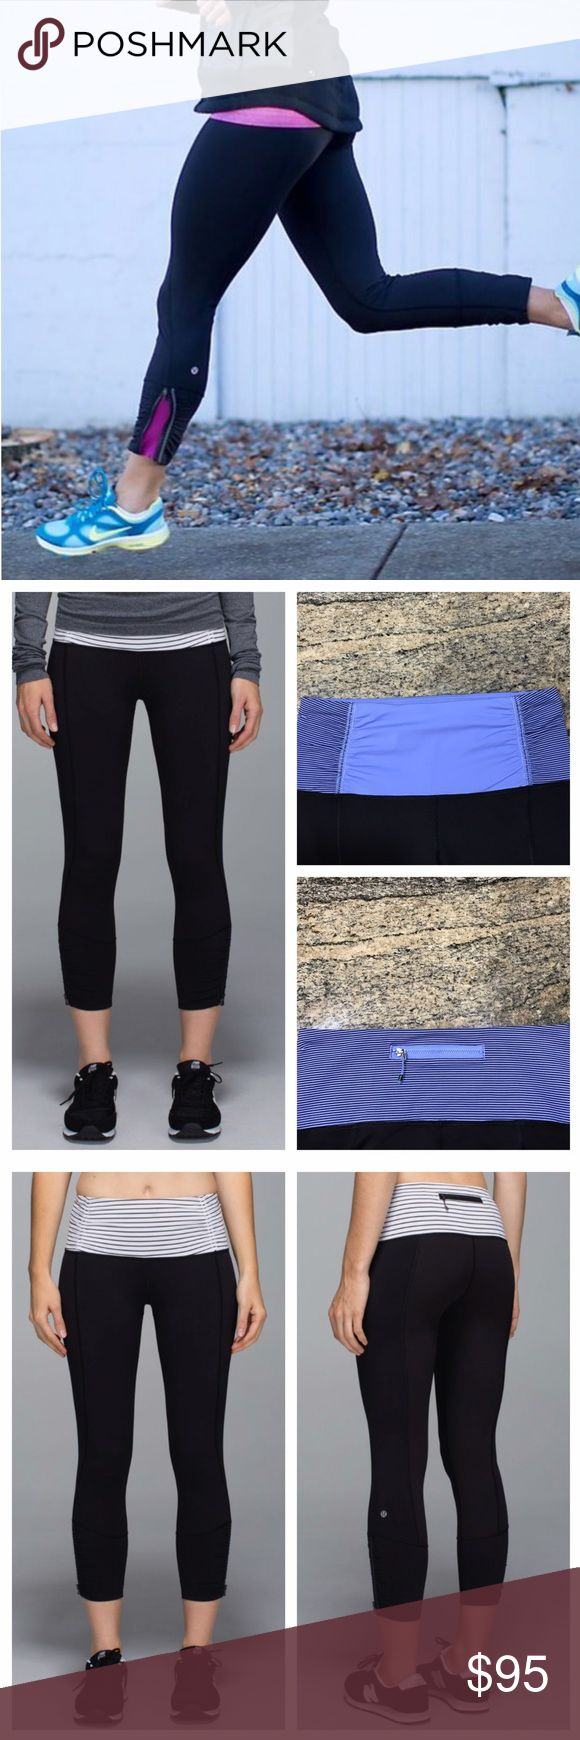 Lululemon {Rare} Runday Crop Parallel Stripe Lilac In black/parallel stripe lilac/black. This is the only pair in this exact same color for sale online. Keep calm &run on in these run crops with zippers. Four way stretch, power luxtreme, moisture wicking &breathable. Reflective details for visibility. Medium rise.Perfect condition, worn once, NO Flaws. Stock pics are exact same style except mine the waistband is lilac with  blk parallel stripes. Refer to pics. All reasonable offers are…